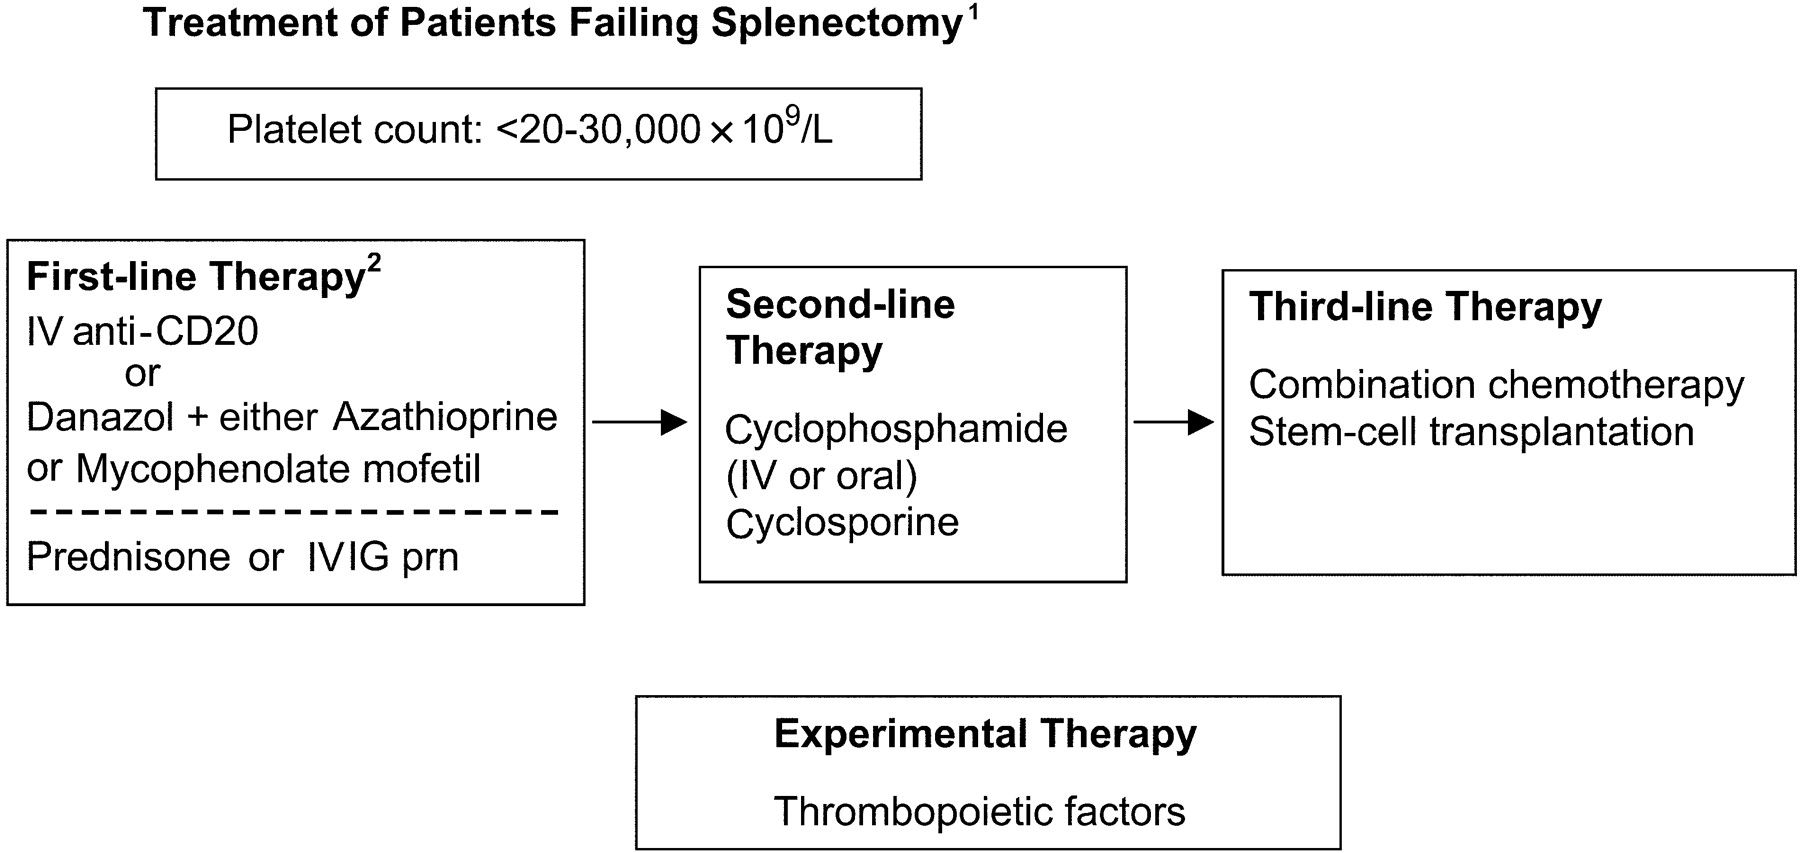 diagnosing and monitoring of thrombocytopenia biology essay Introduction heparin-induced thrombocytopenia (hit) is a life-threatening complication of exposure to heparin (eg, unfractionated heparin, low molecular weight [lmw] heparin) that occurs in a small percentage of patients exposed, regardless of the dose, schedule, or route of administration.